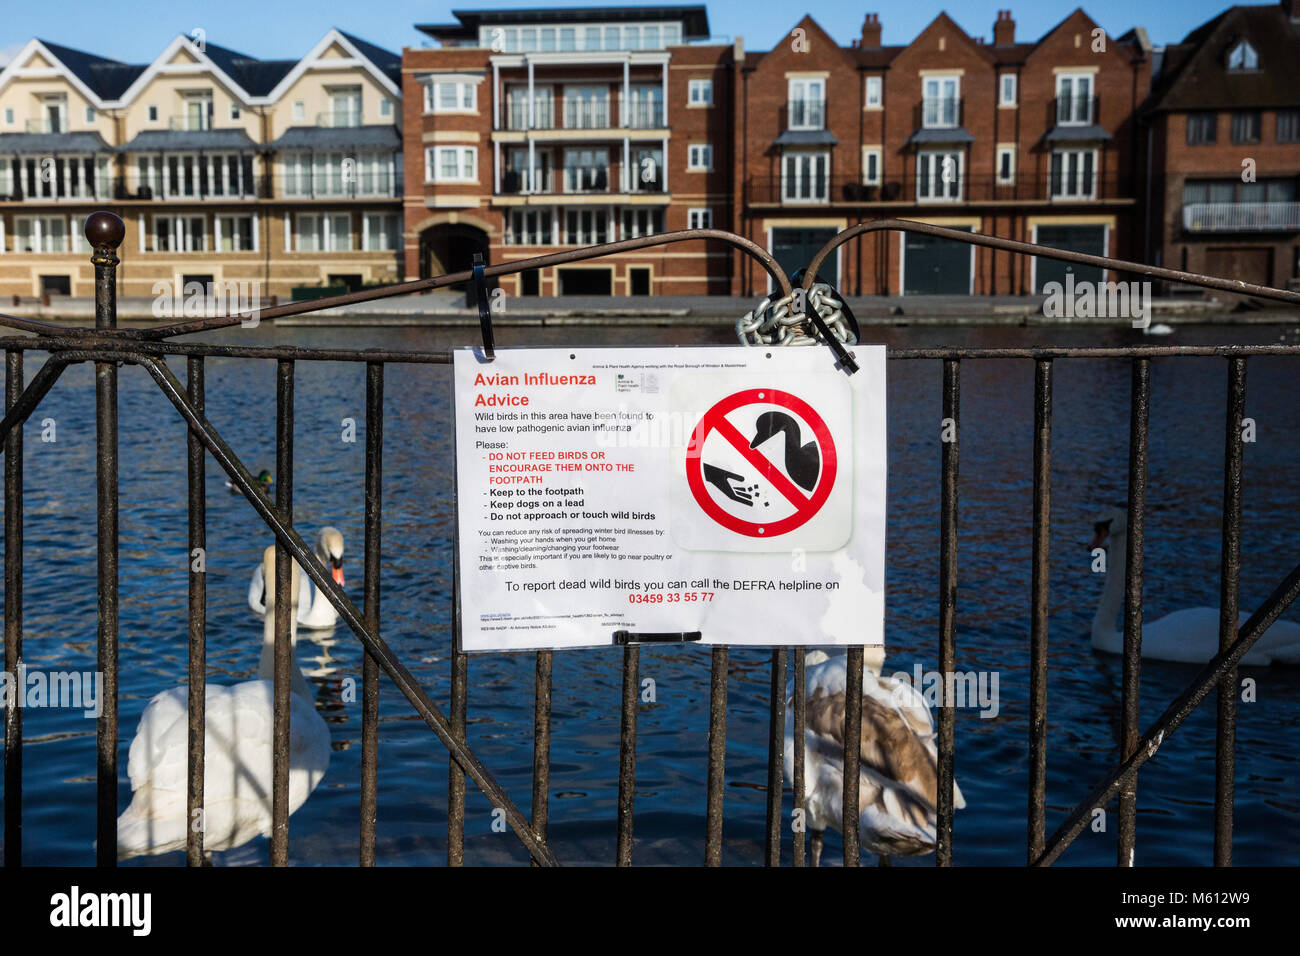 Windsor, UK. 27th February, 2018. An Avian Influenza Advice notice on display next to the river Thames following - Stock Image